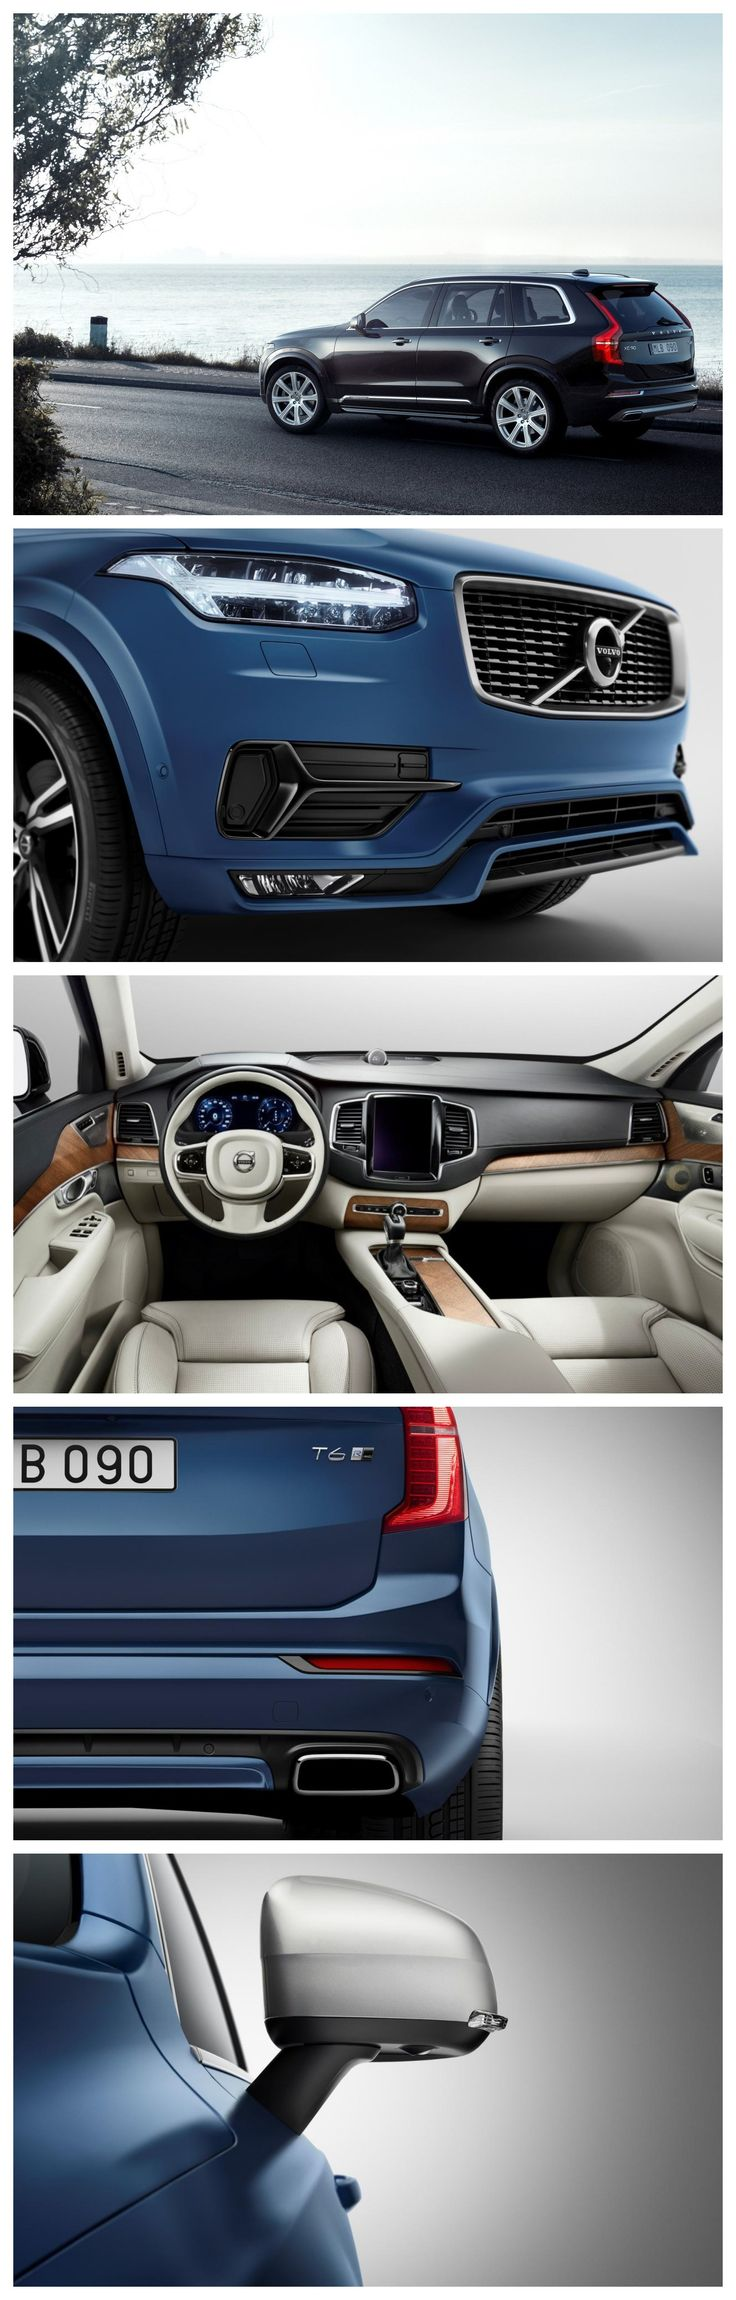 The May 12 has been finalized for the launch of this Volvo XC90 next generation with only diesel engine though.  #VolvoXC90